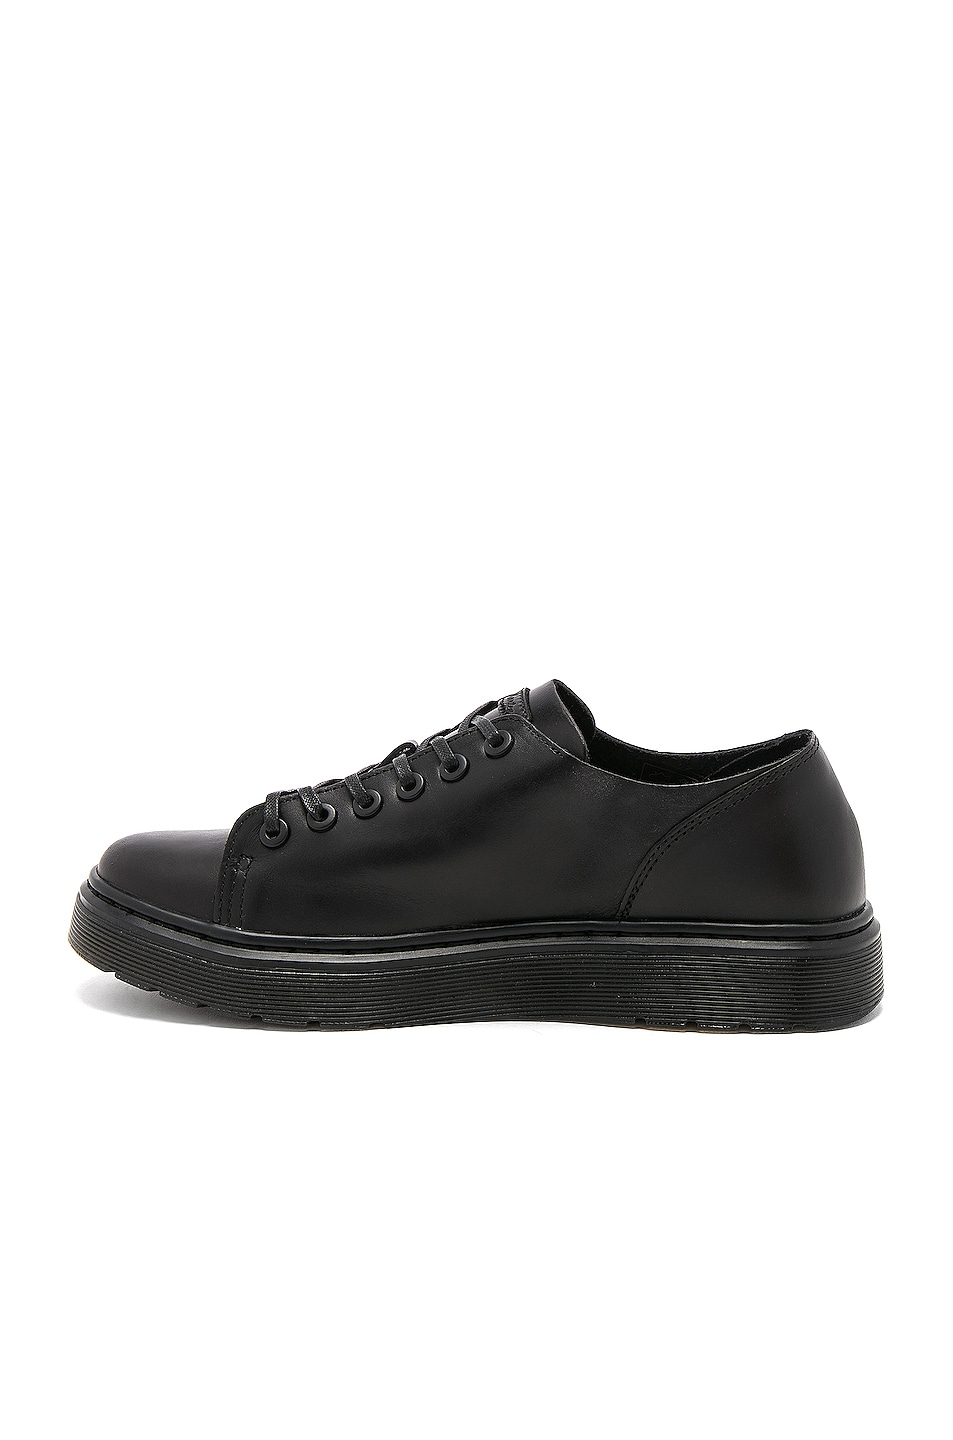 Image 5 of Dr. Martens Dante 6 Eye Leather Shoes in Black